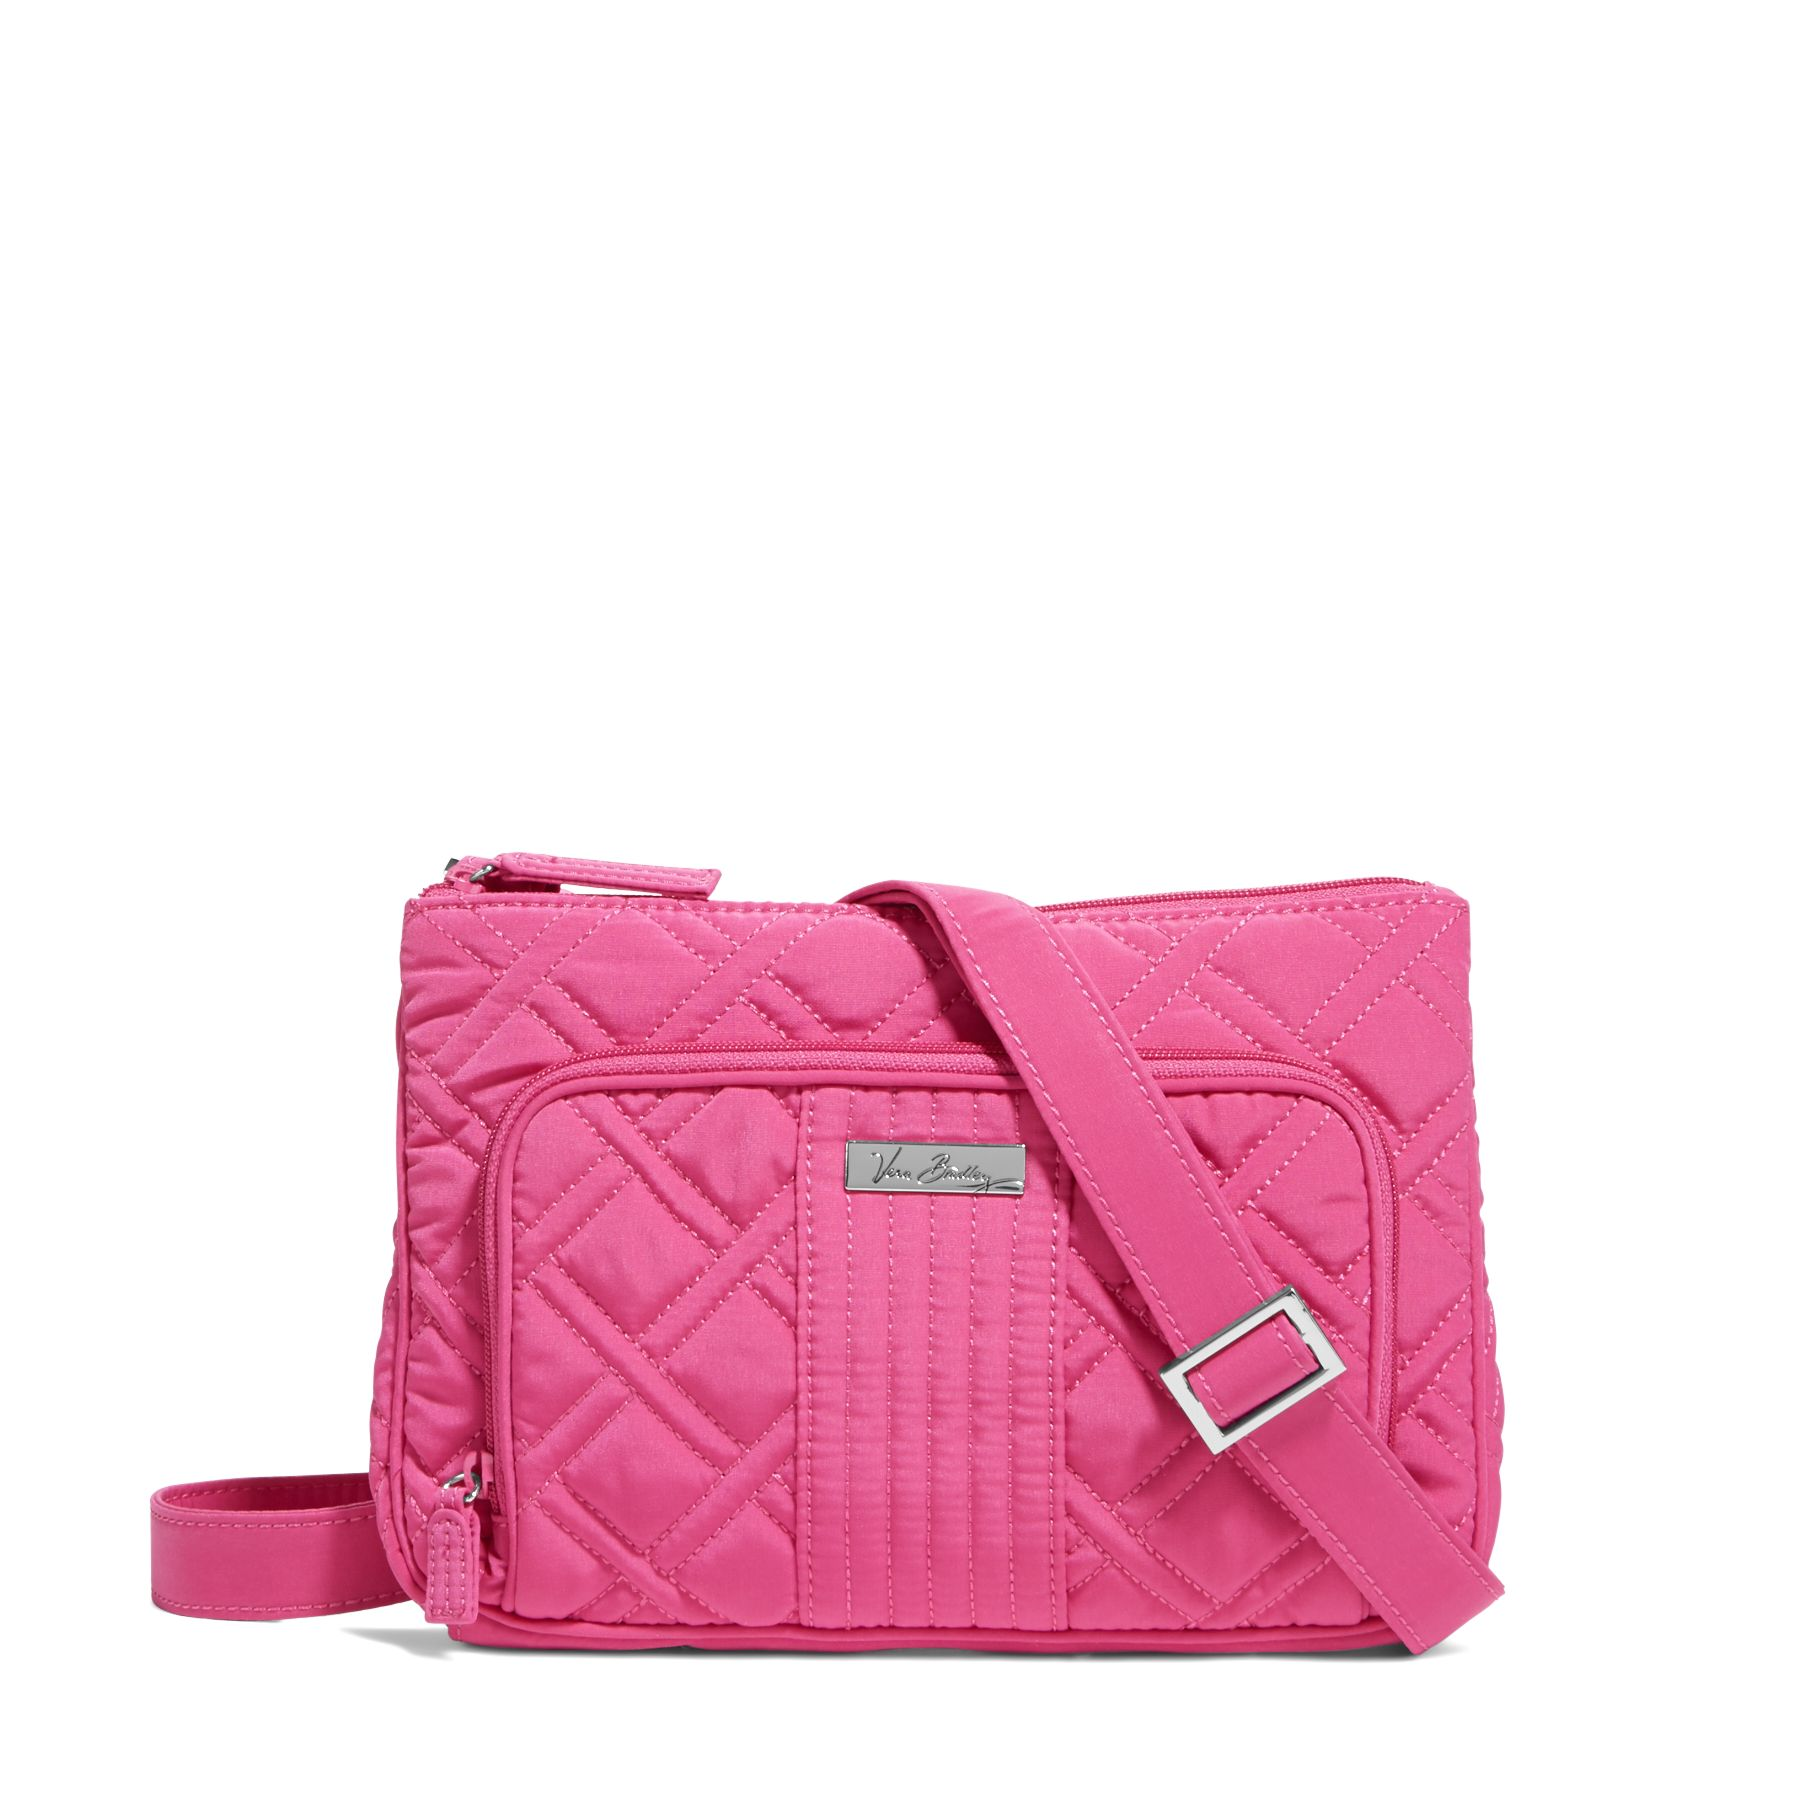 Vera Bradley Little Hipster Crossbody in Fuchsia